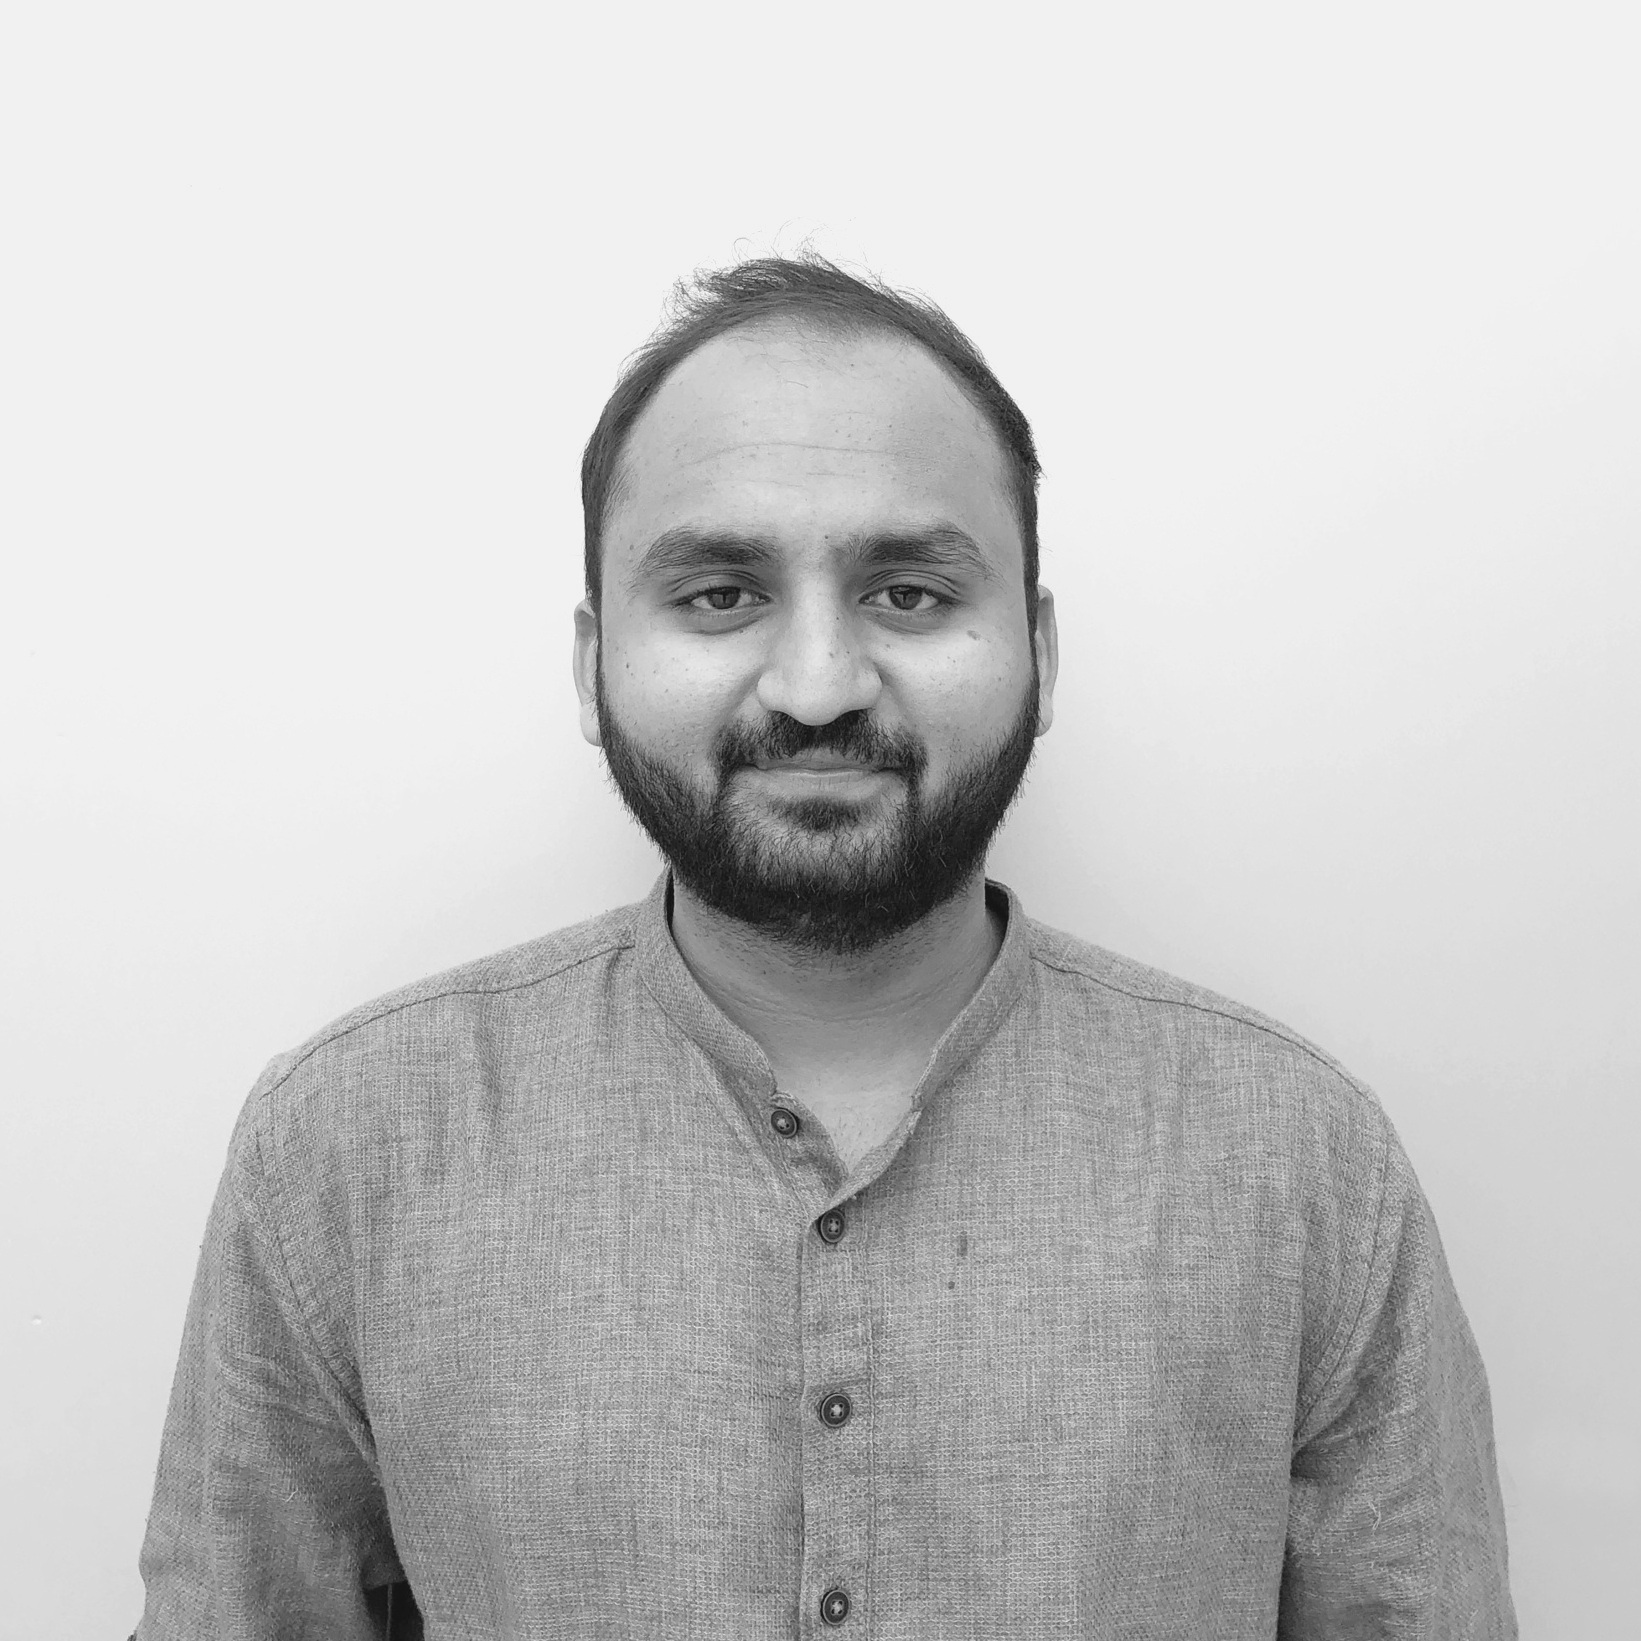 anubhav agrawal - Interested in brand strategy, organisation transformation, and consumer research. Experienced in org level talent acquisition strategies for growing businesses. Connoisseur of interesting books and good music. Currently intrigued by minimalism and holistic healing.LinkedInTwitter